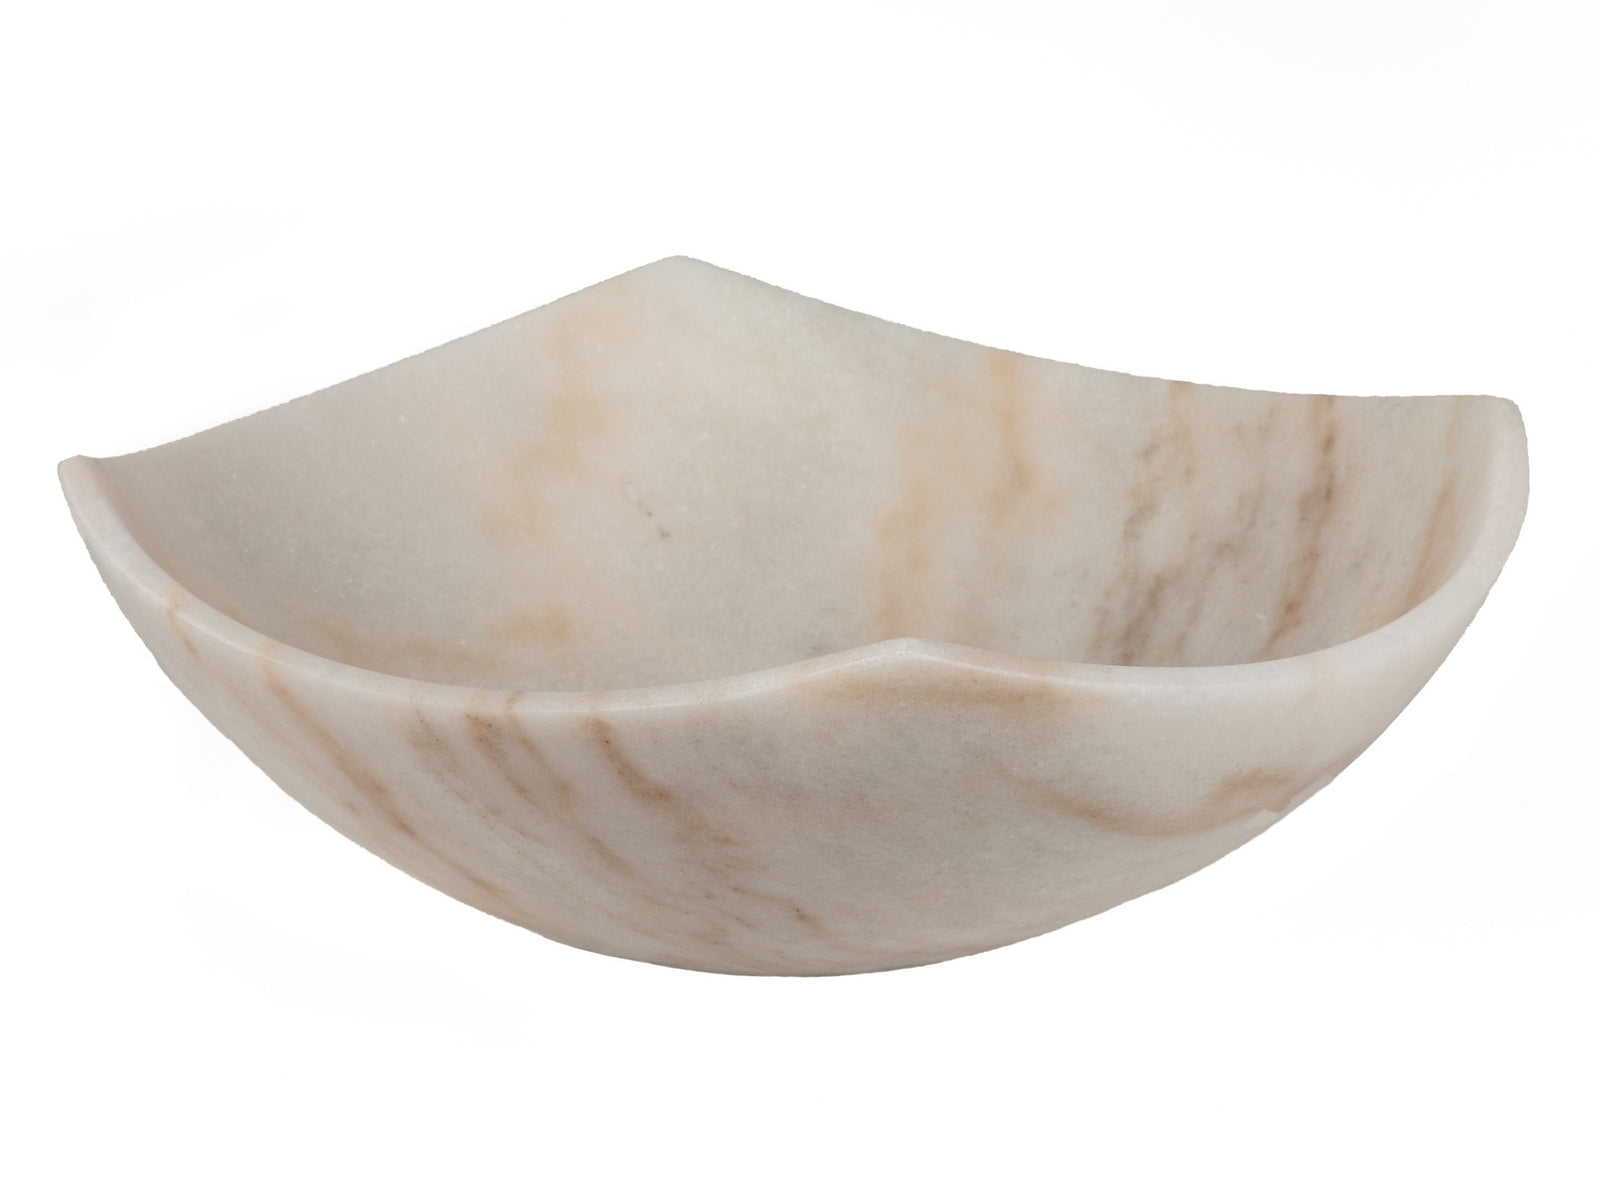 Arched Edges Bowl Sink - Honed White Marble